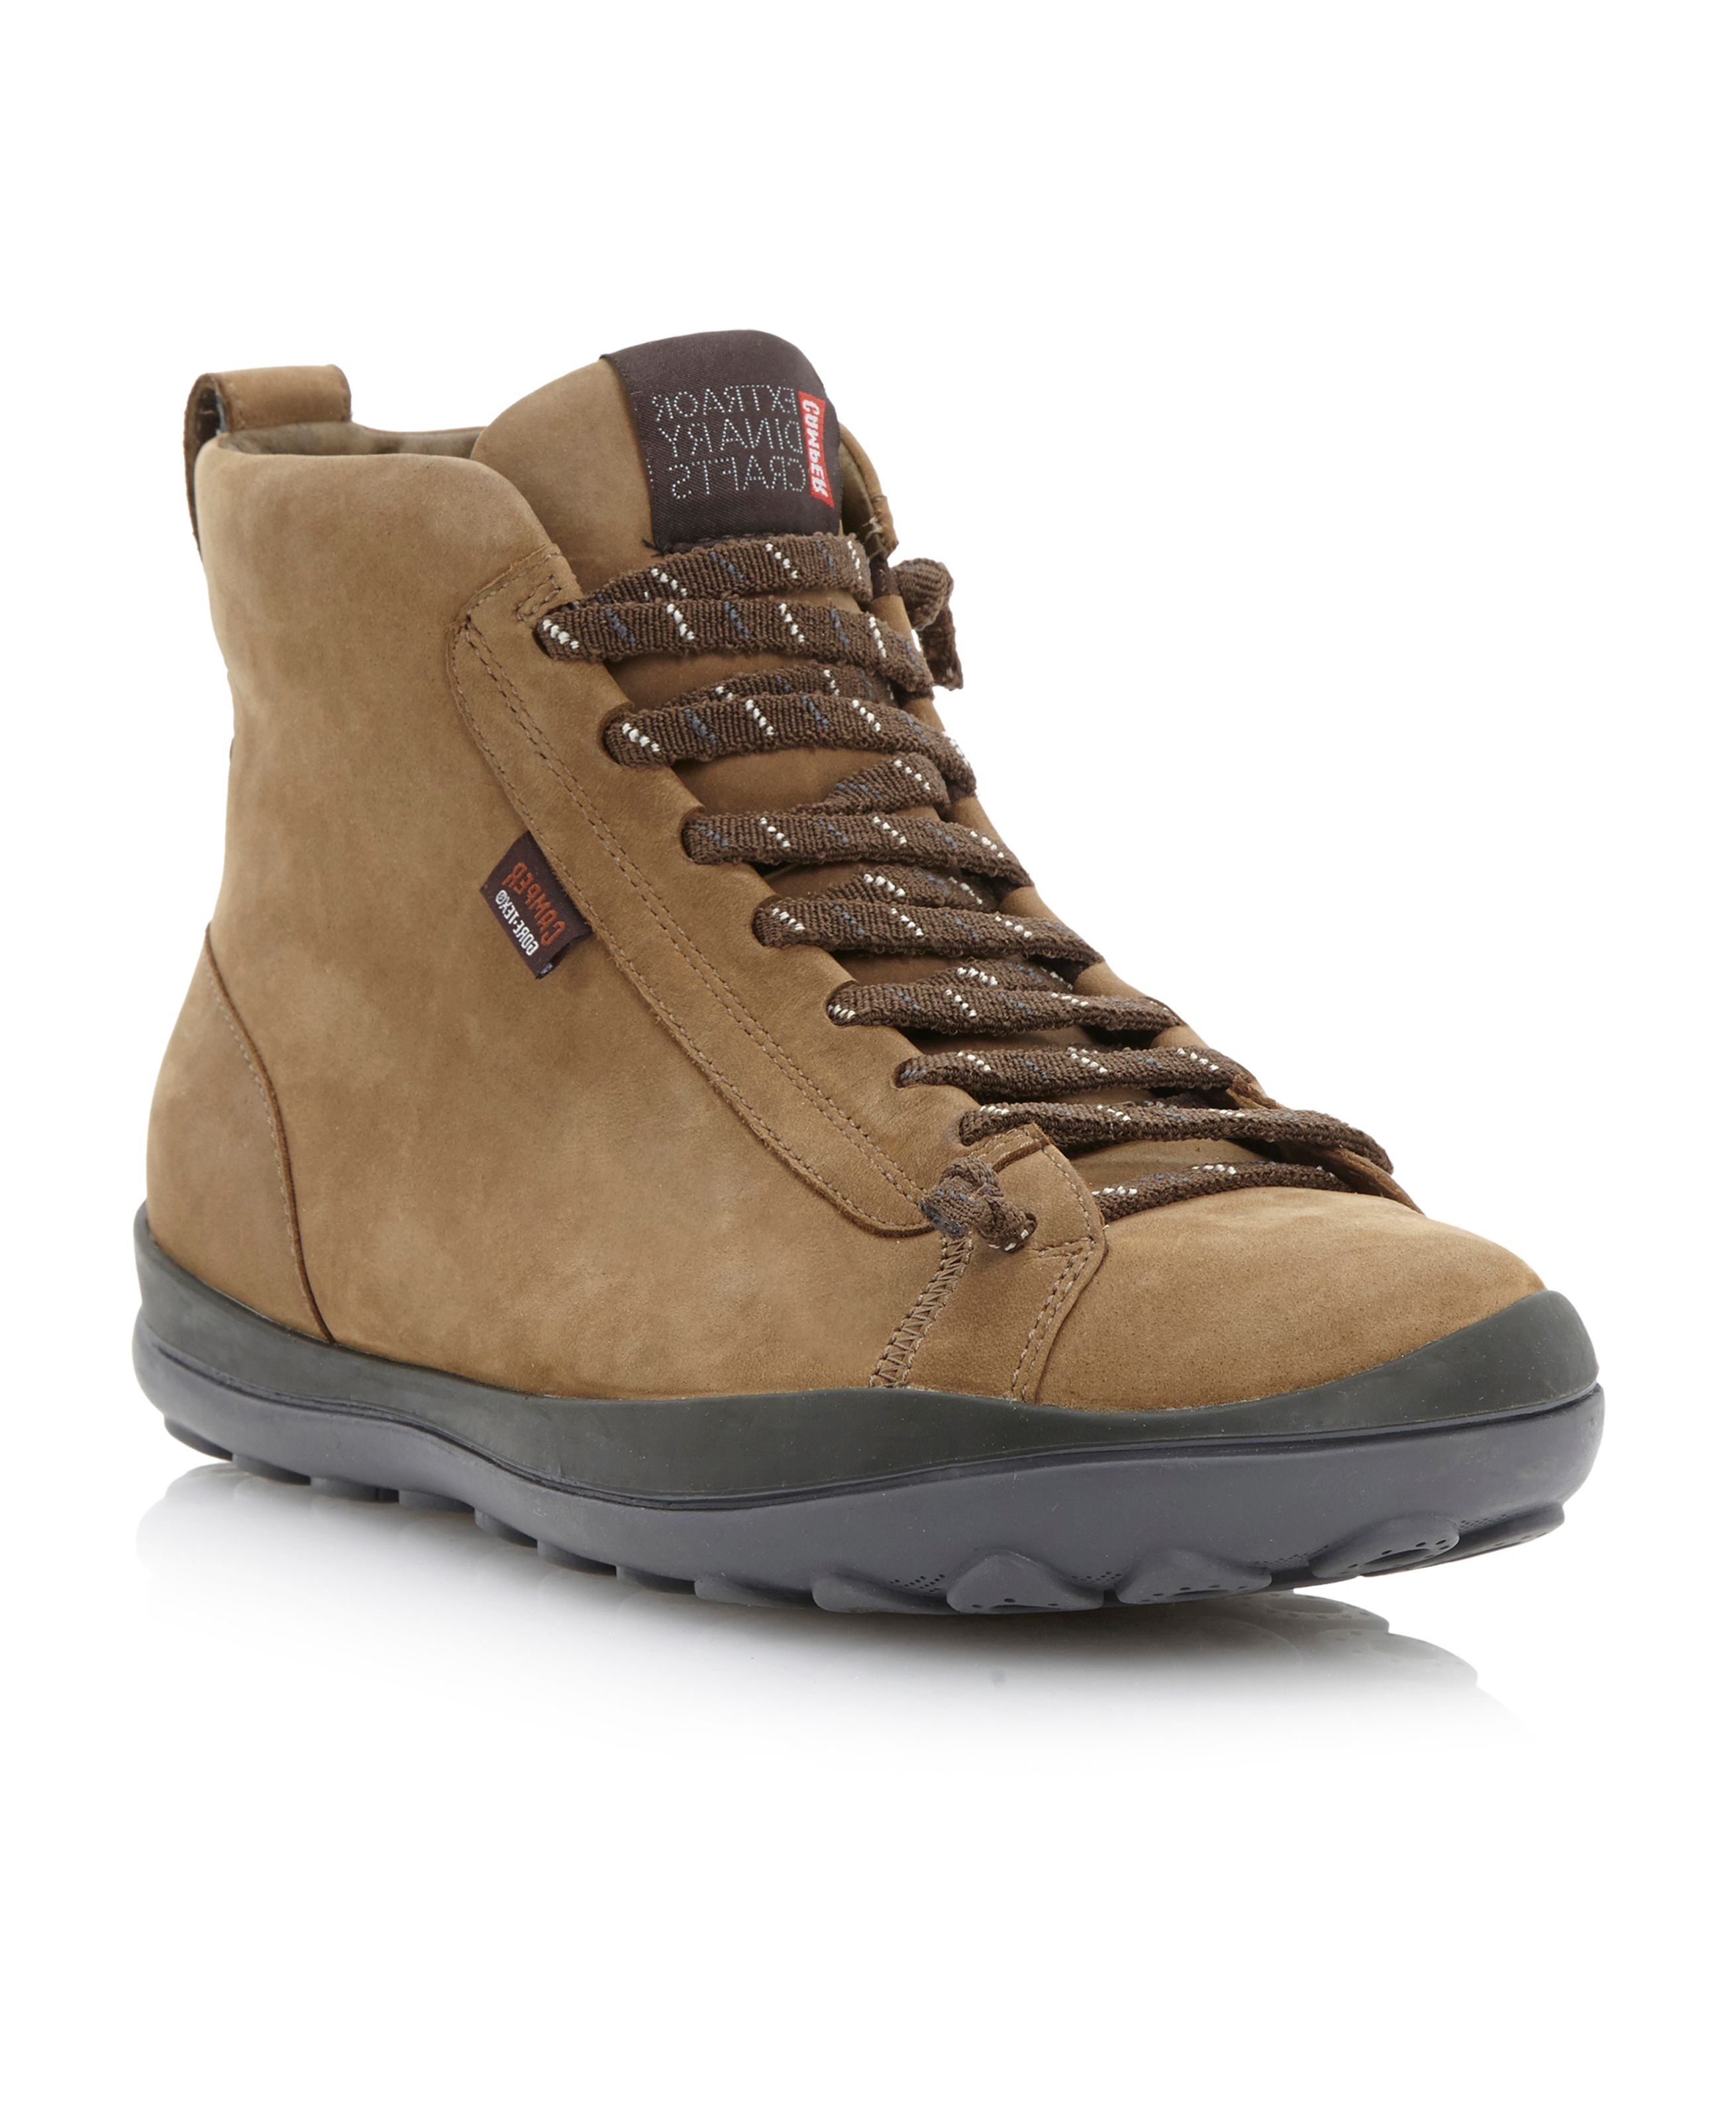 Peu Pista 3661- hiker lace goretex boot